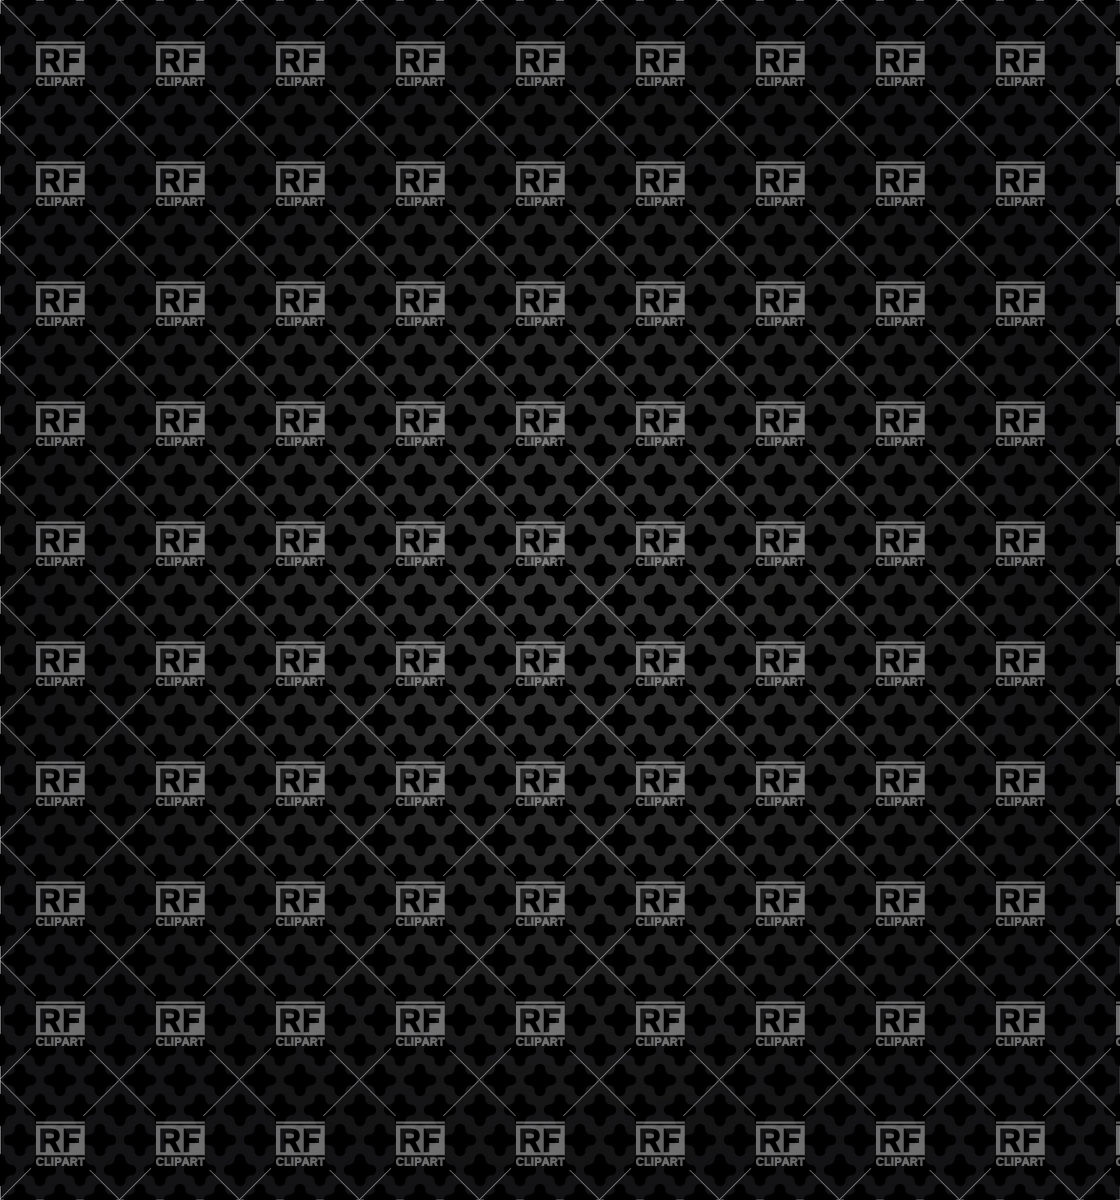 Metal black perforated background Vector Image #18491.